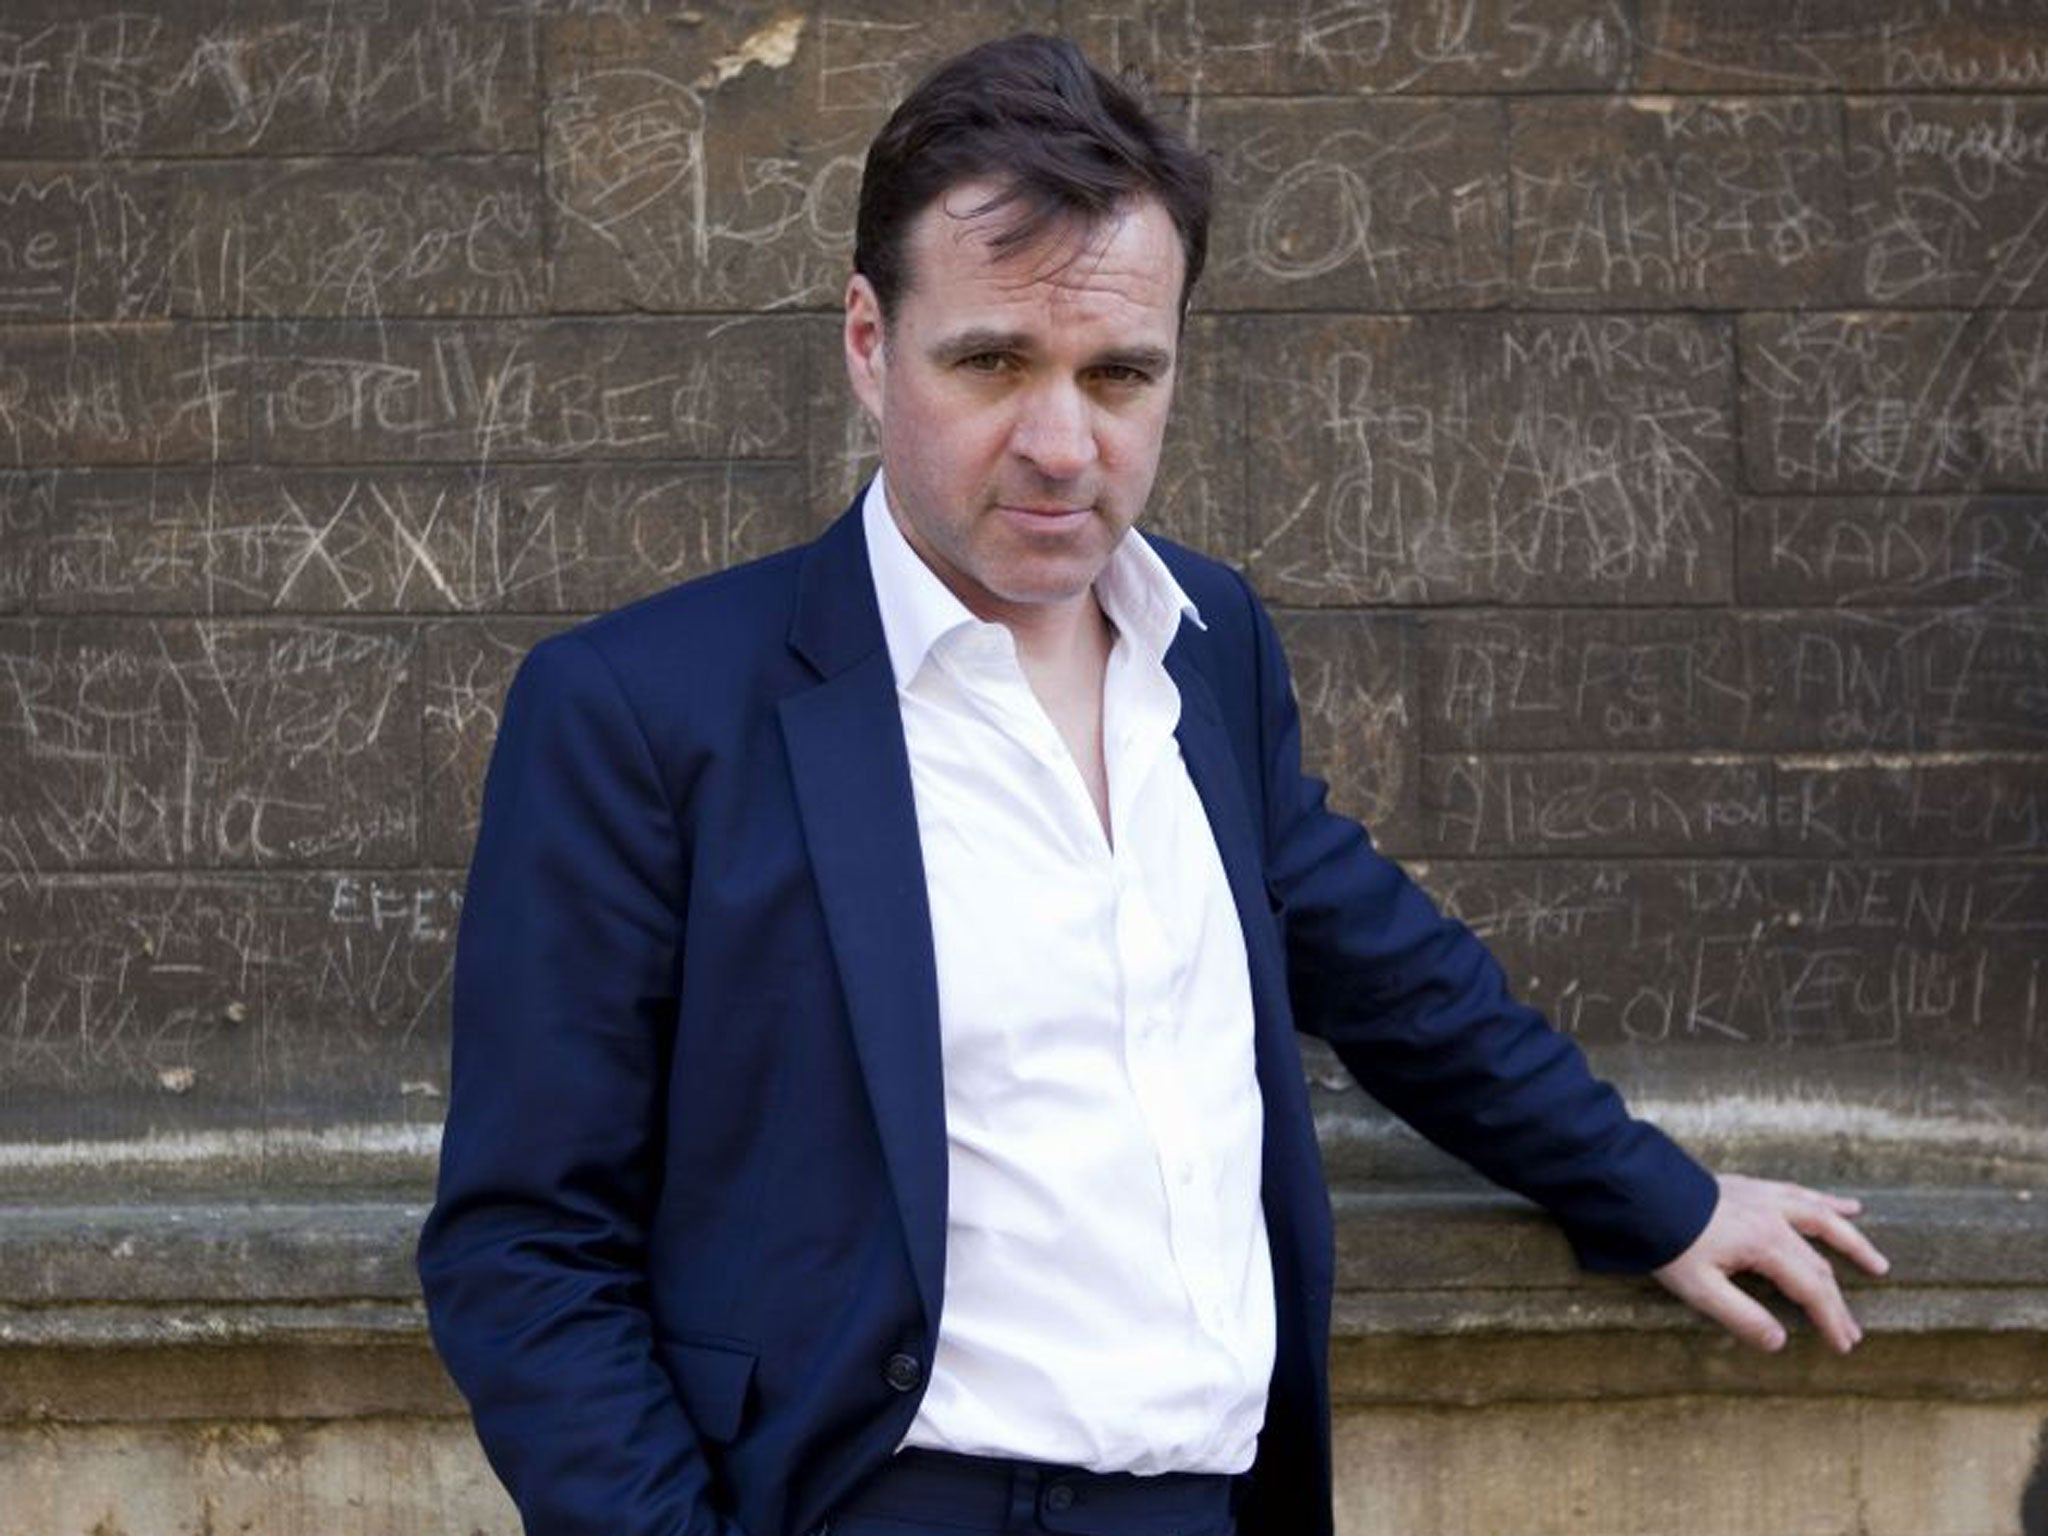 Tv Historian And Harvard Professor Niall Ferguson Apologises For 'stupid' Ments About John Maynard Keynes' Homosexuality  The Independent